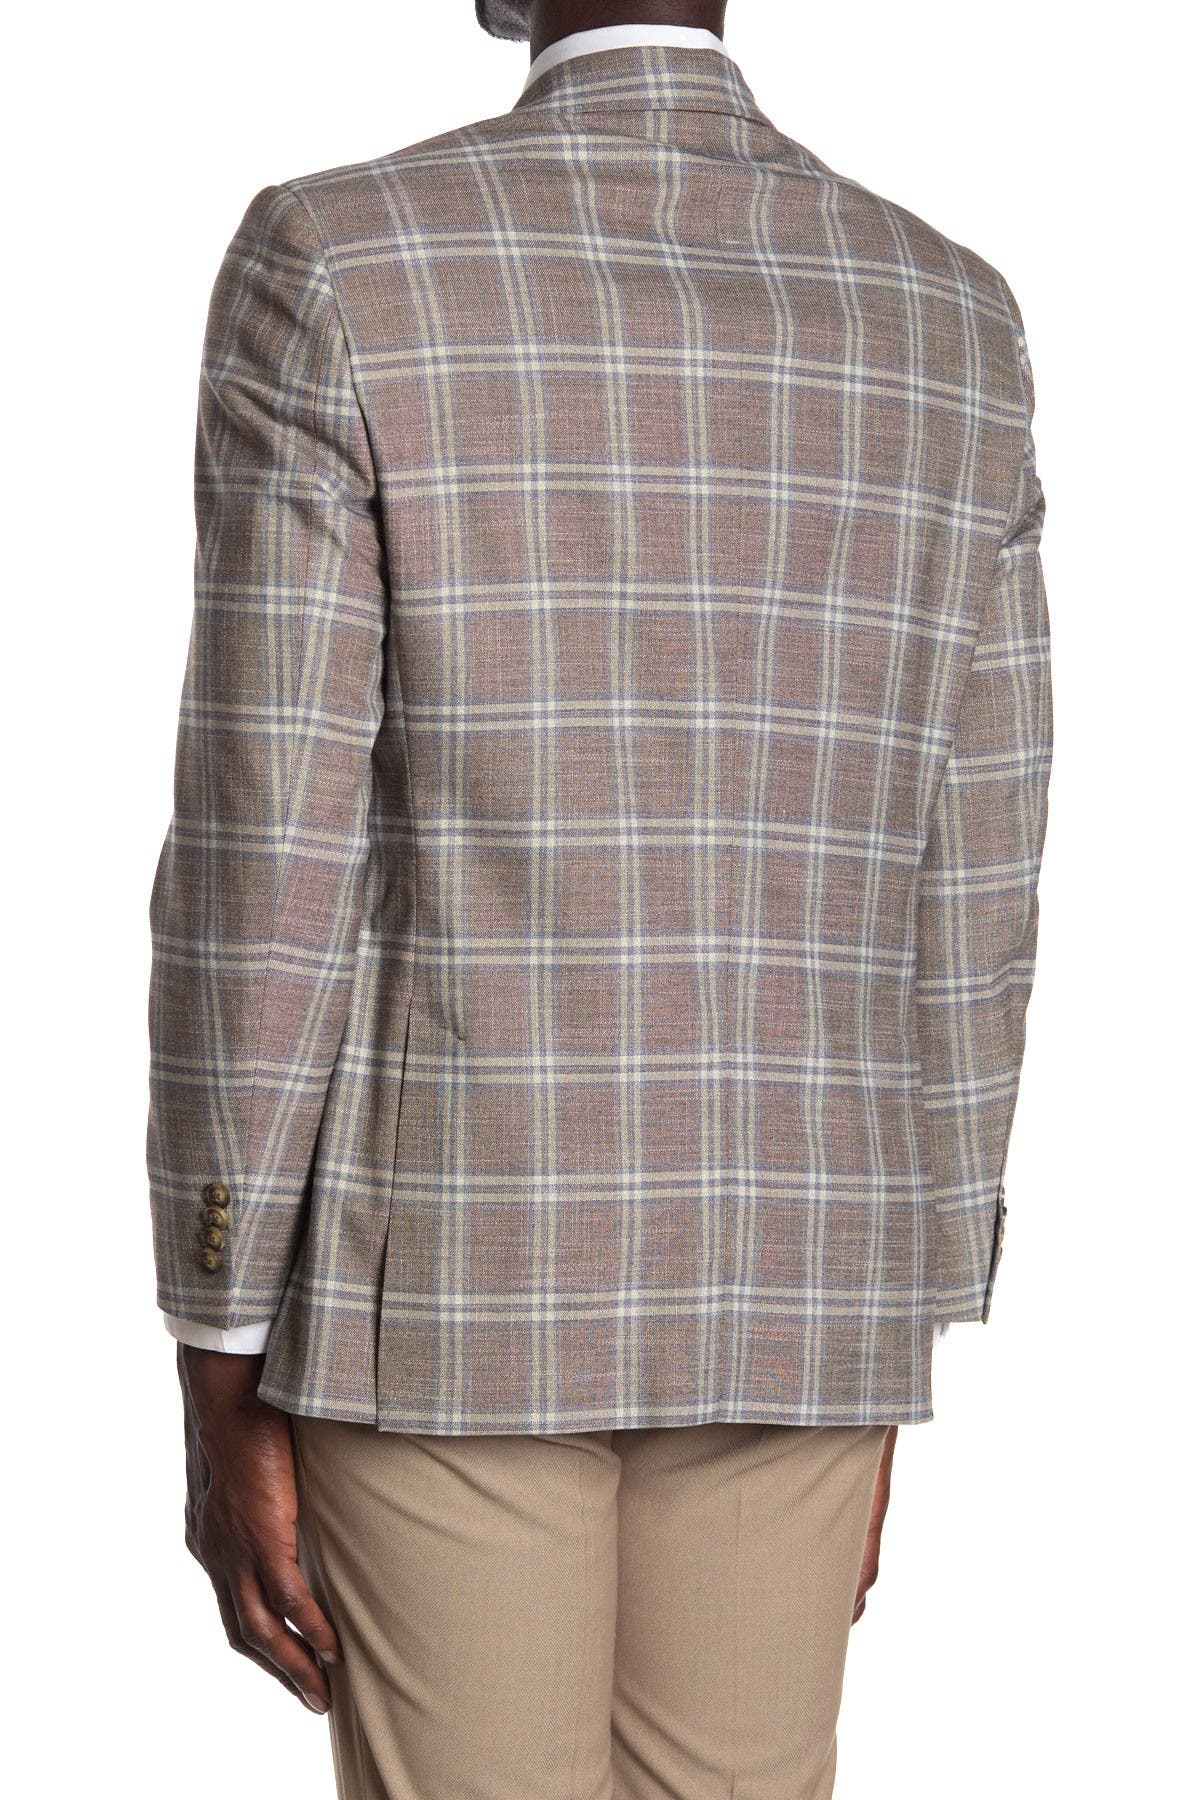 Tommy Hilfiger Tan/Blue Plaid Two Button Notch Lapel Sport Coat at Nordstrom Rack